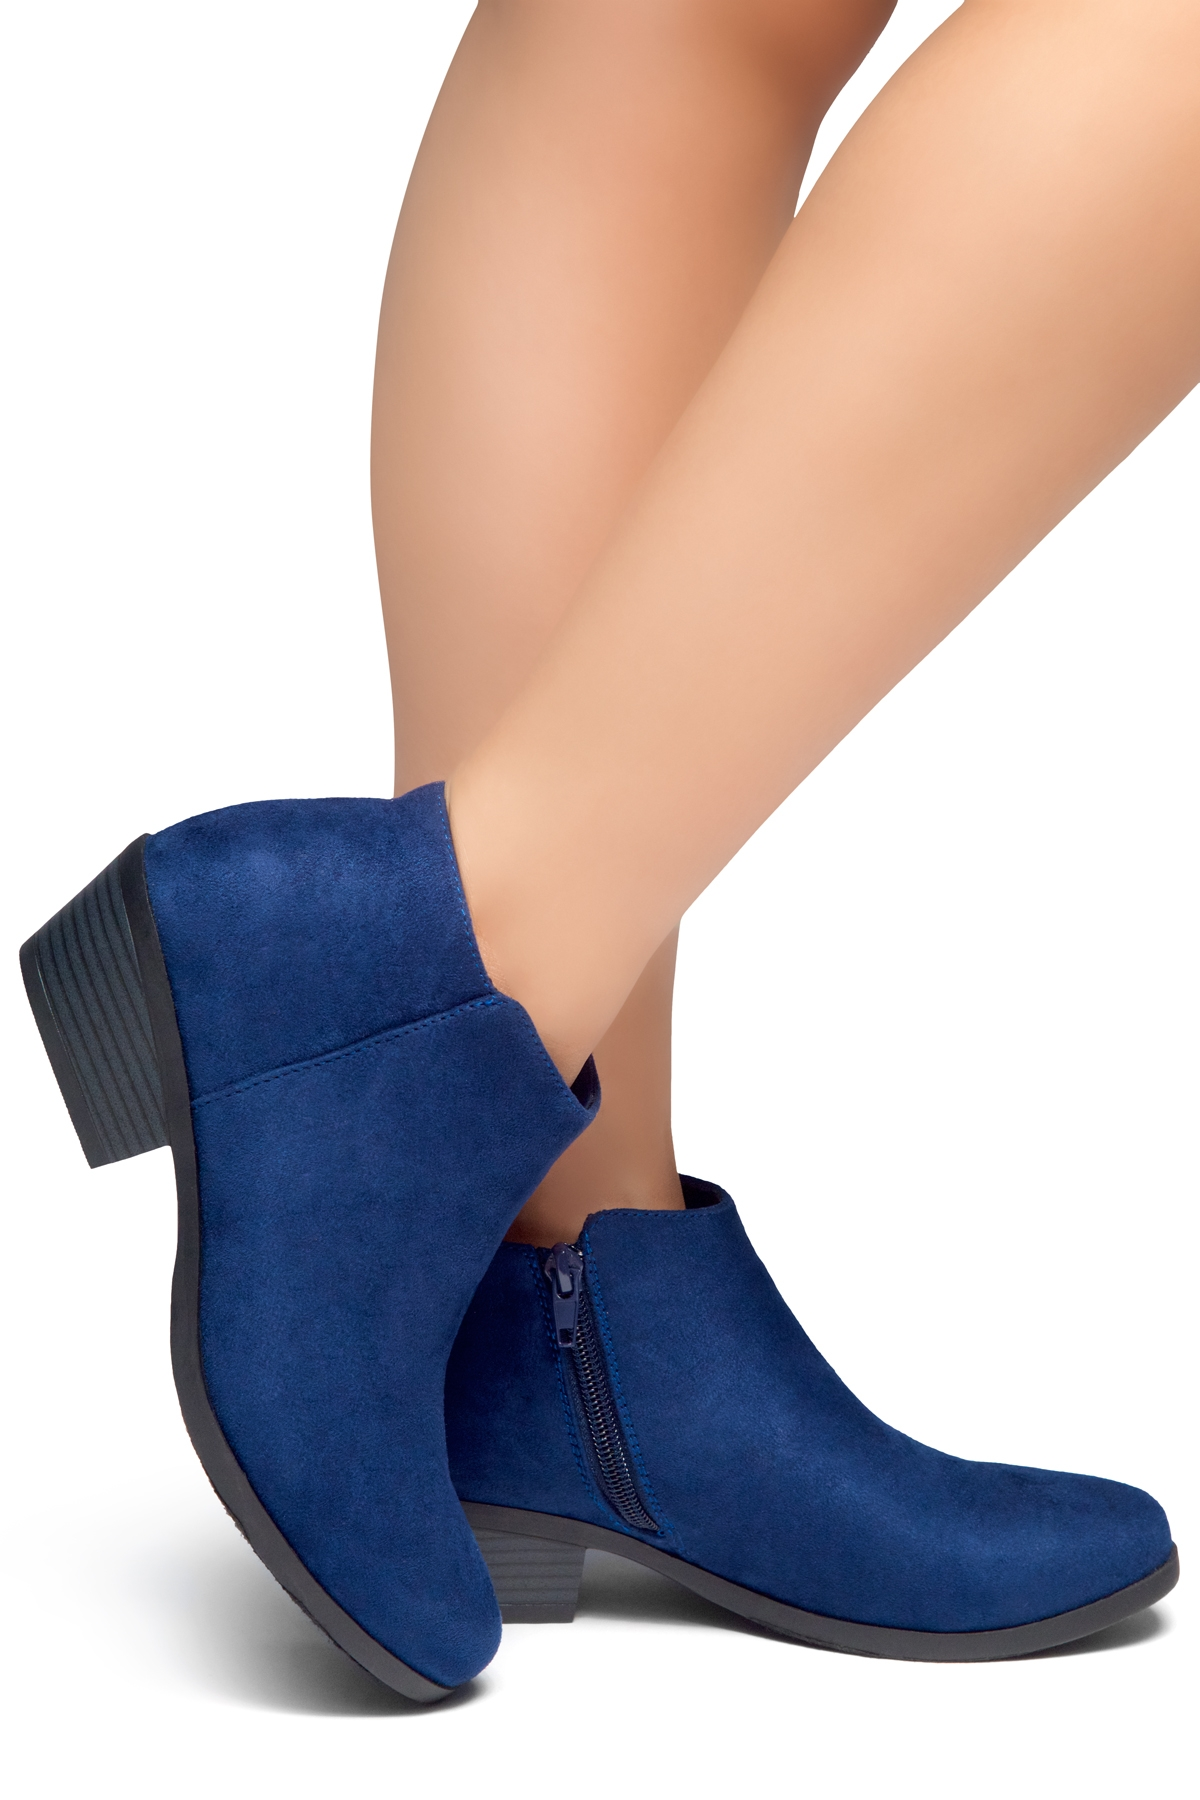 ea32b52a4e1 HerStyle Chatter- Low Stacked Heel Almond Toe Booties (Navy)